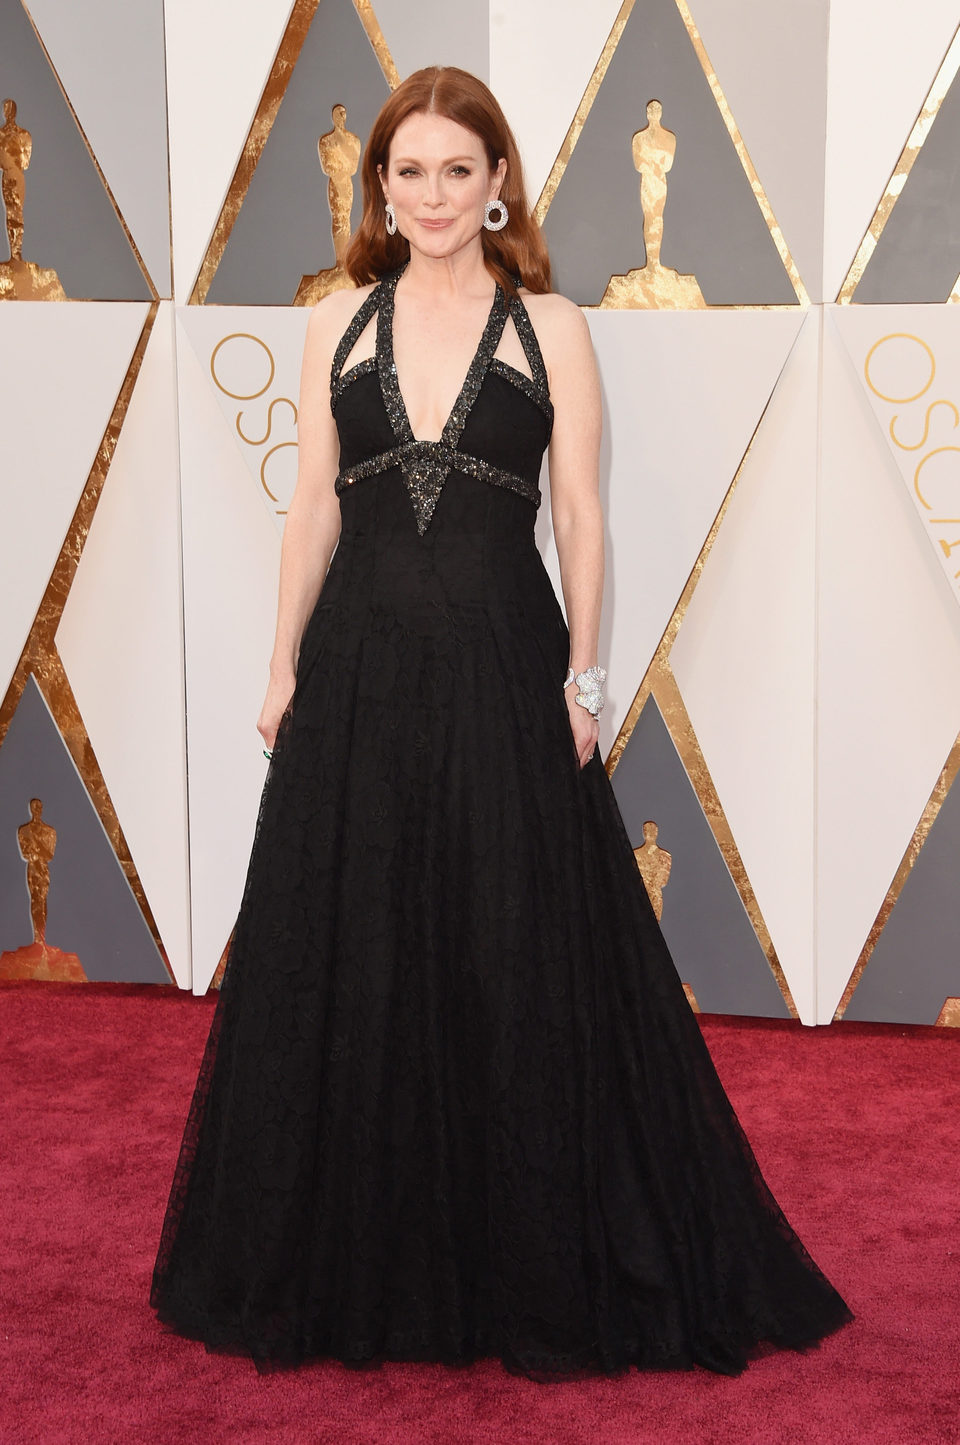 Julianne Moore at the Oscars 2016 red carpet